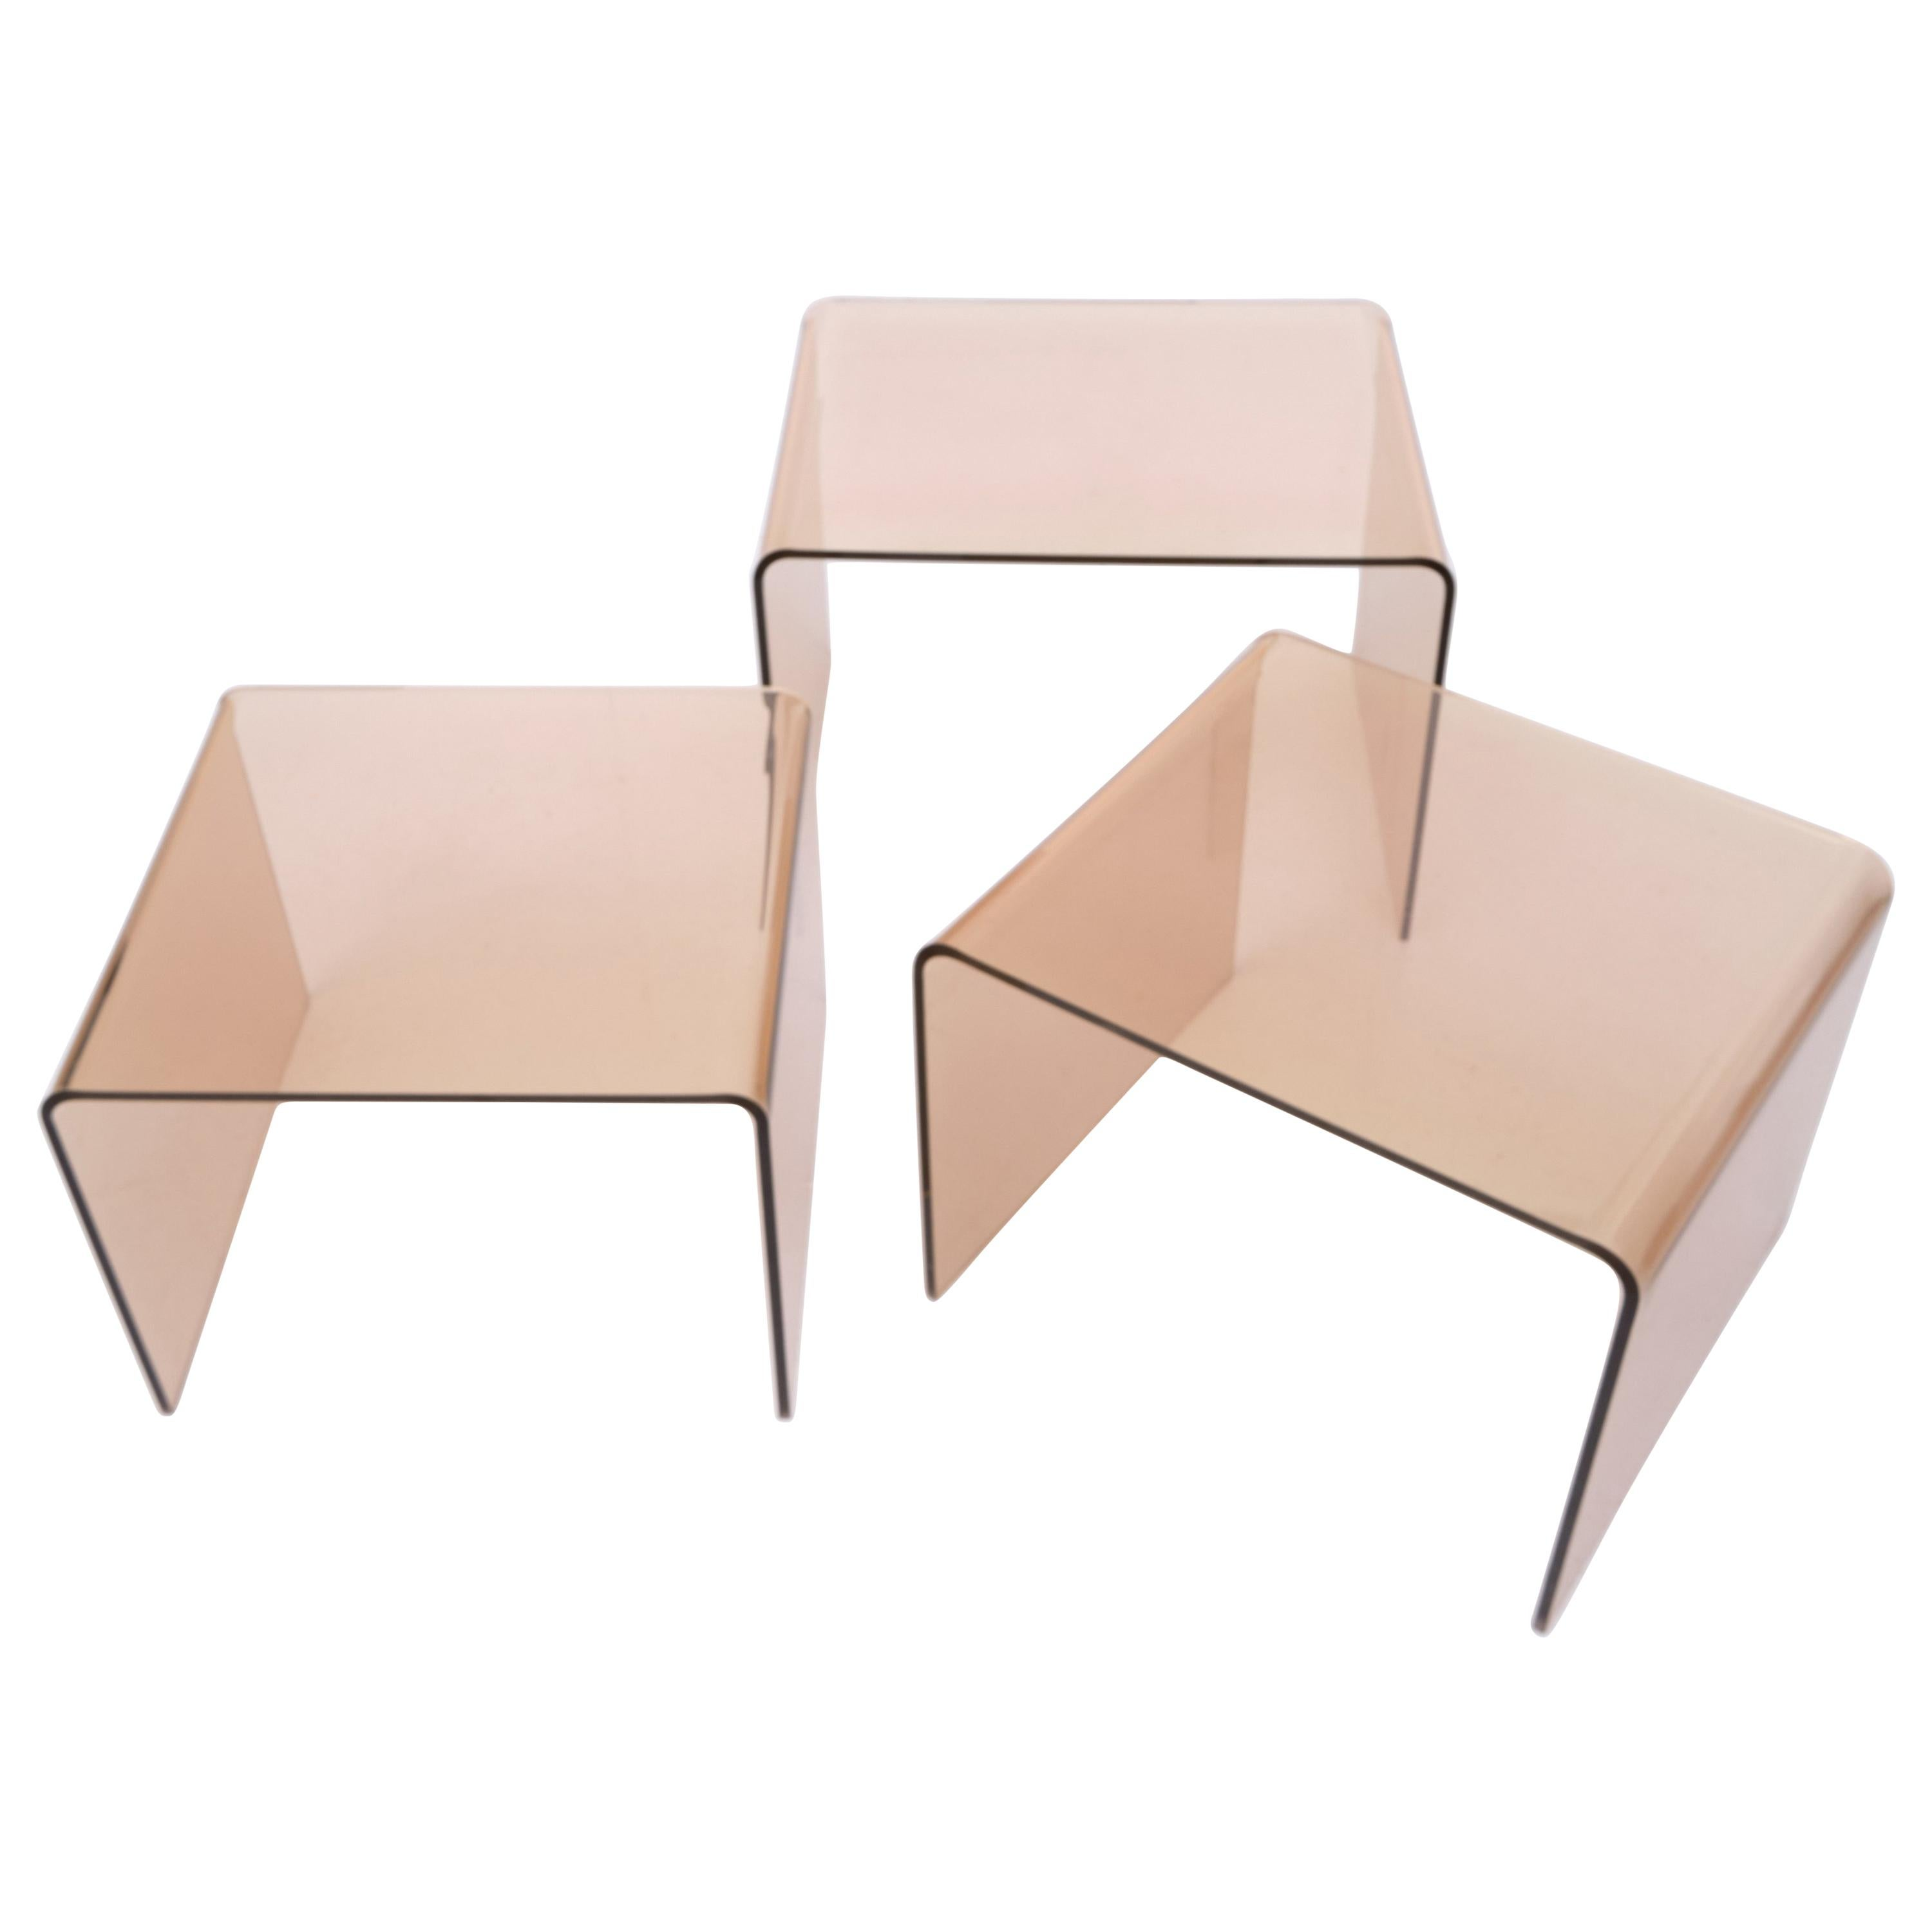 Smoked Lucite Nesting Tables, France, 1970s